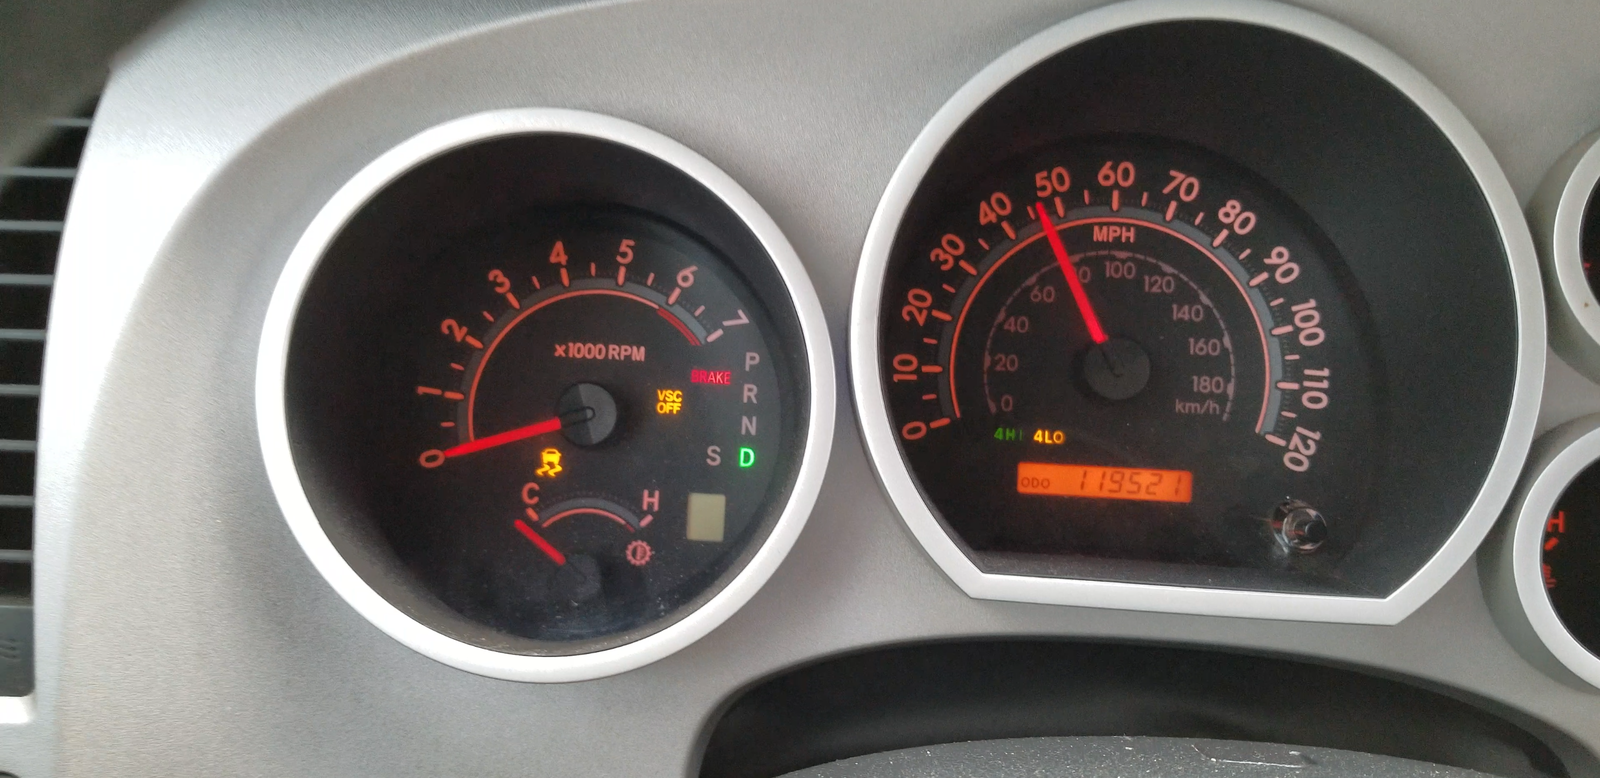 indicator lights flashing and speedometet bounces up and down while  accelerating  check engine light does not come on  hooked up obd2 meter on  it to